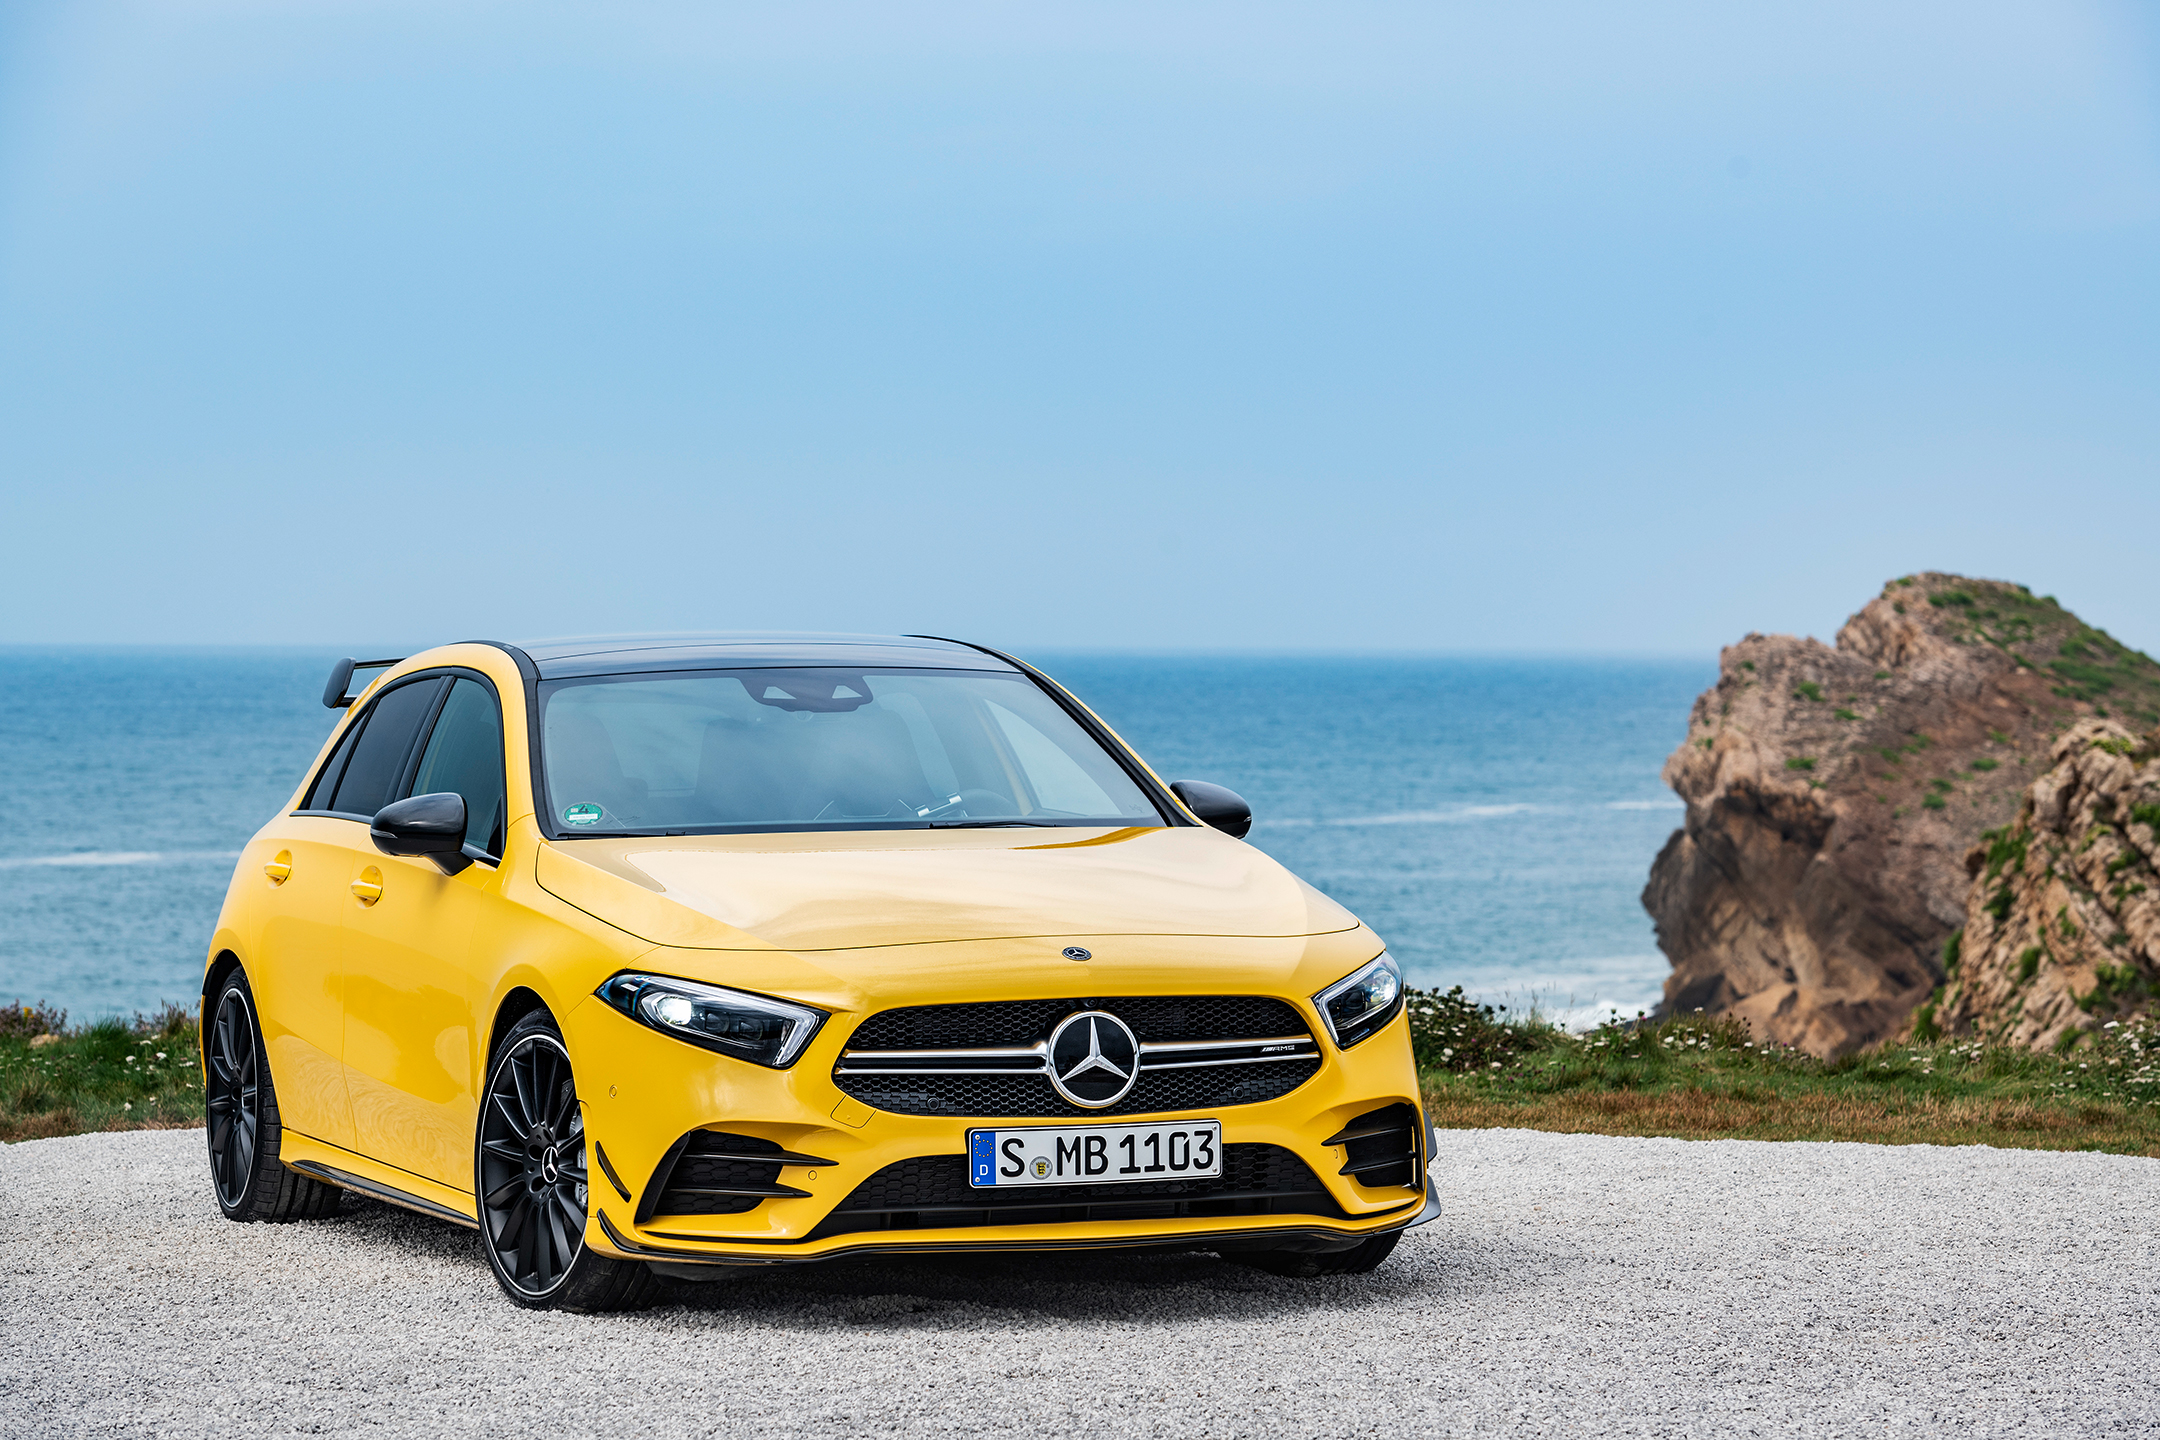 Mercedes-AMG A35 4MATIC - 2018 - front side-face / profil avant